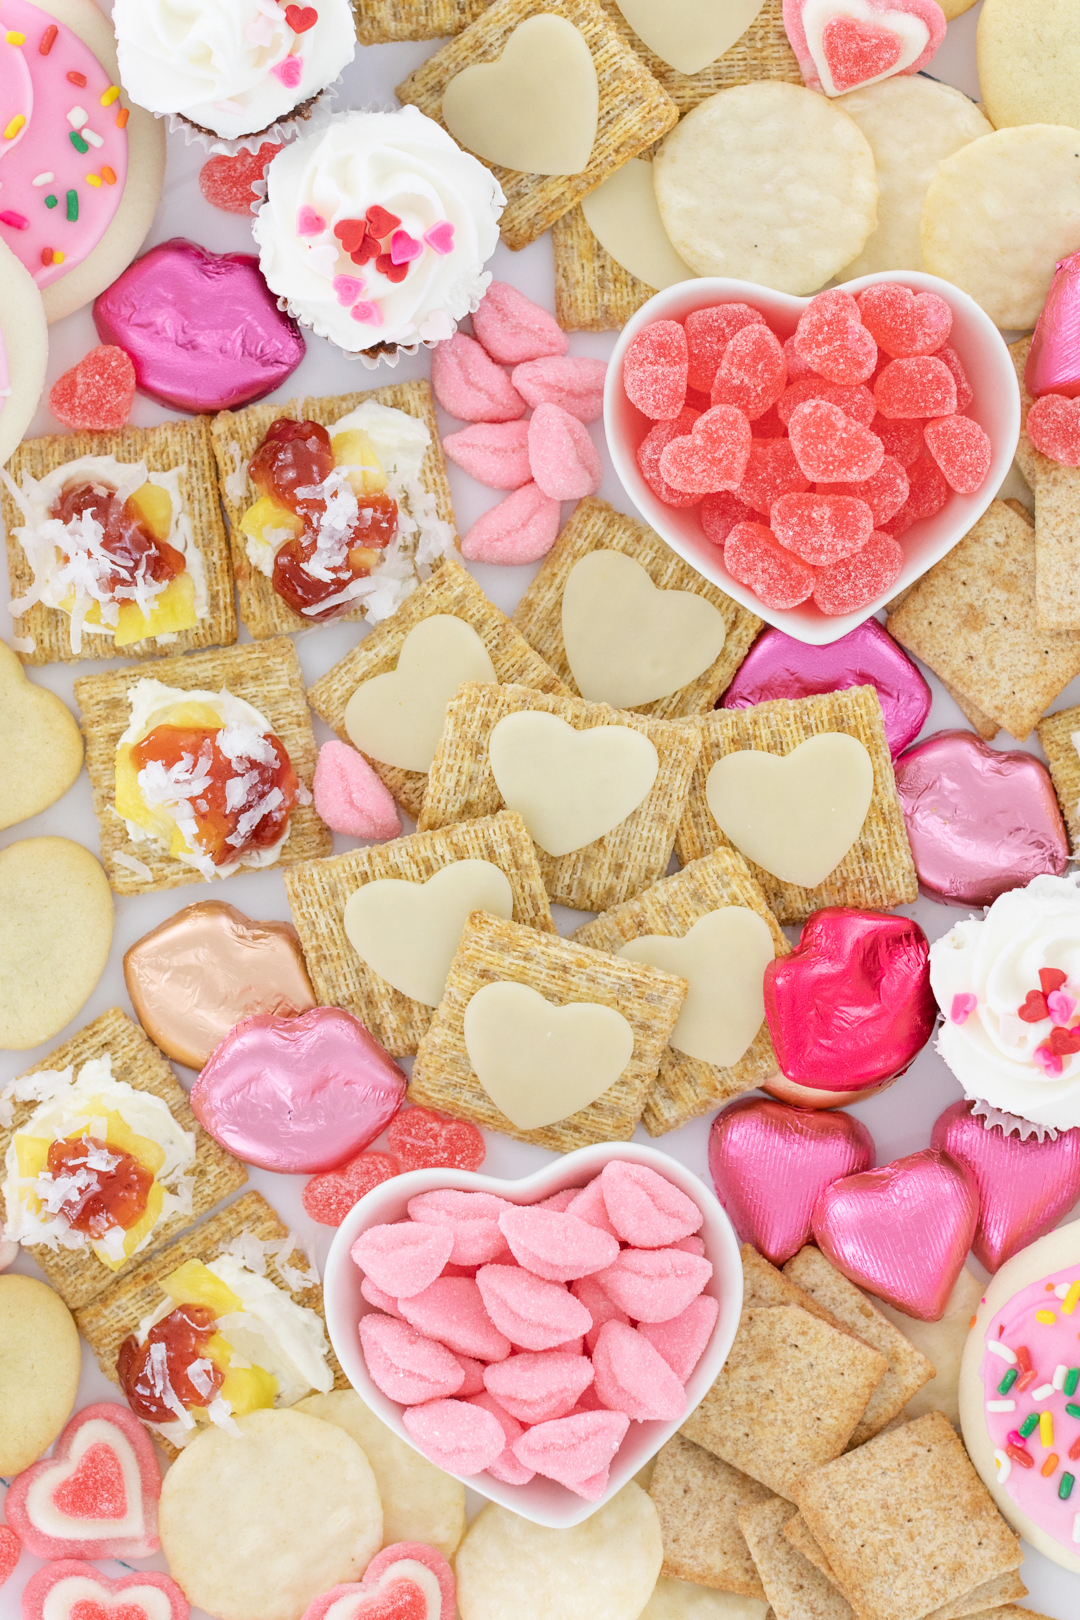 pretty snack board with heart shaped cookies and candies